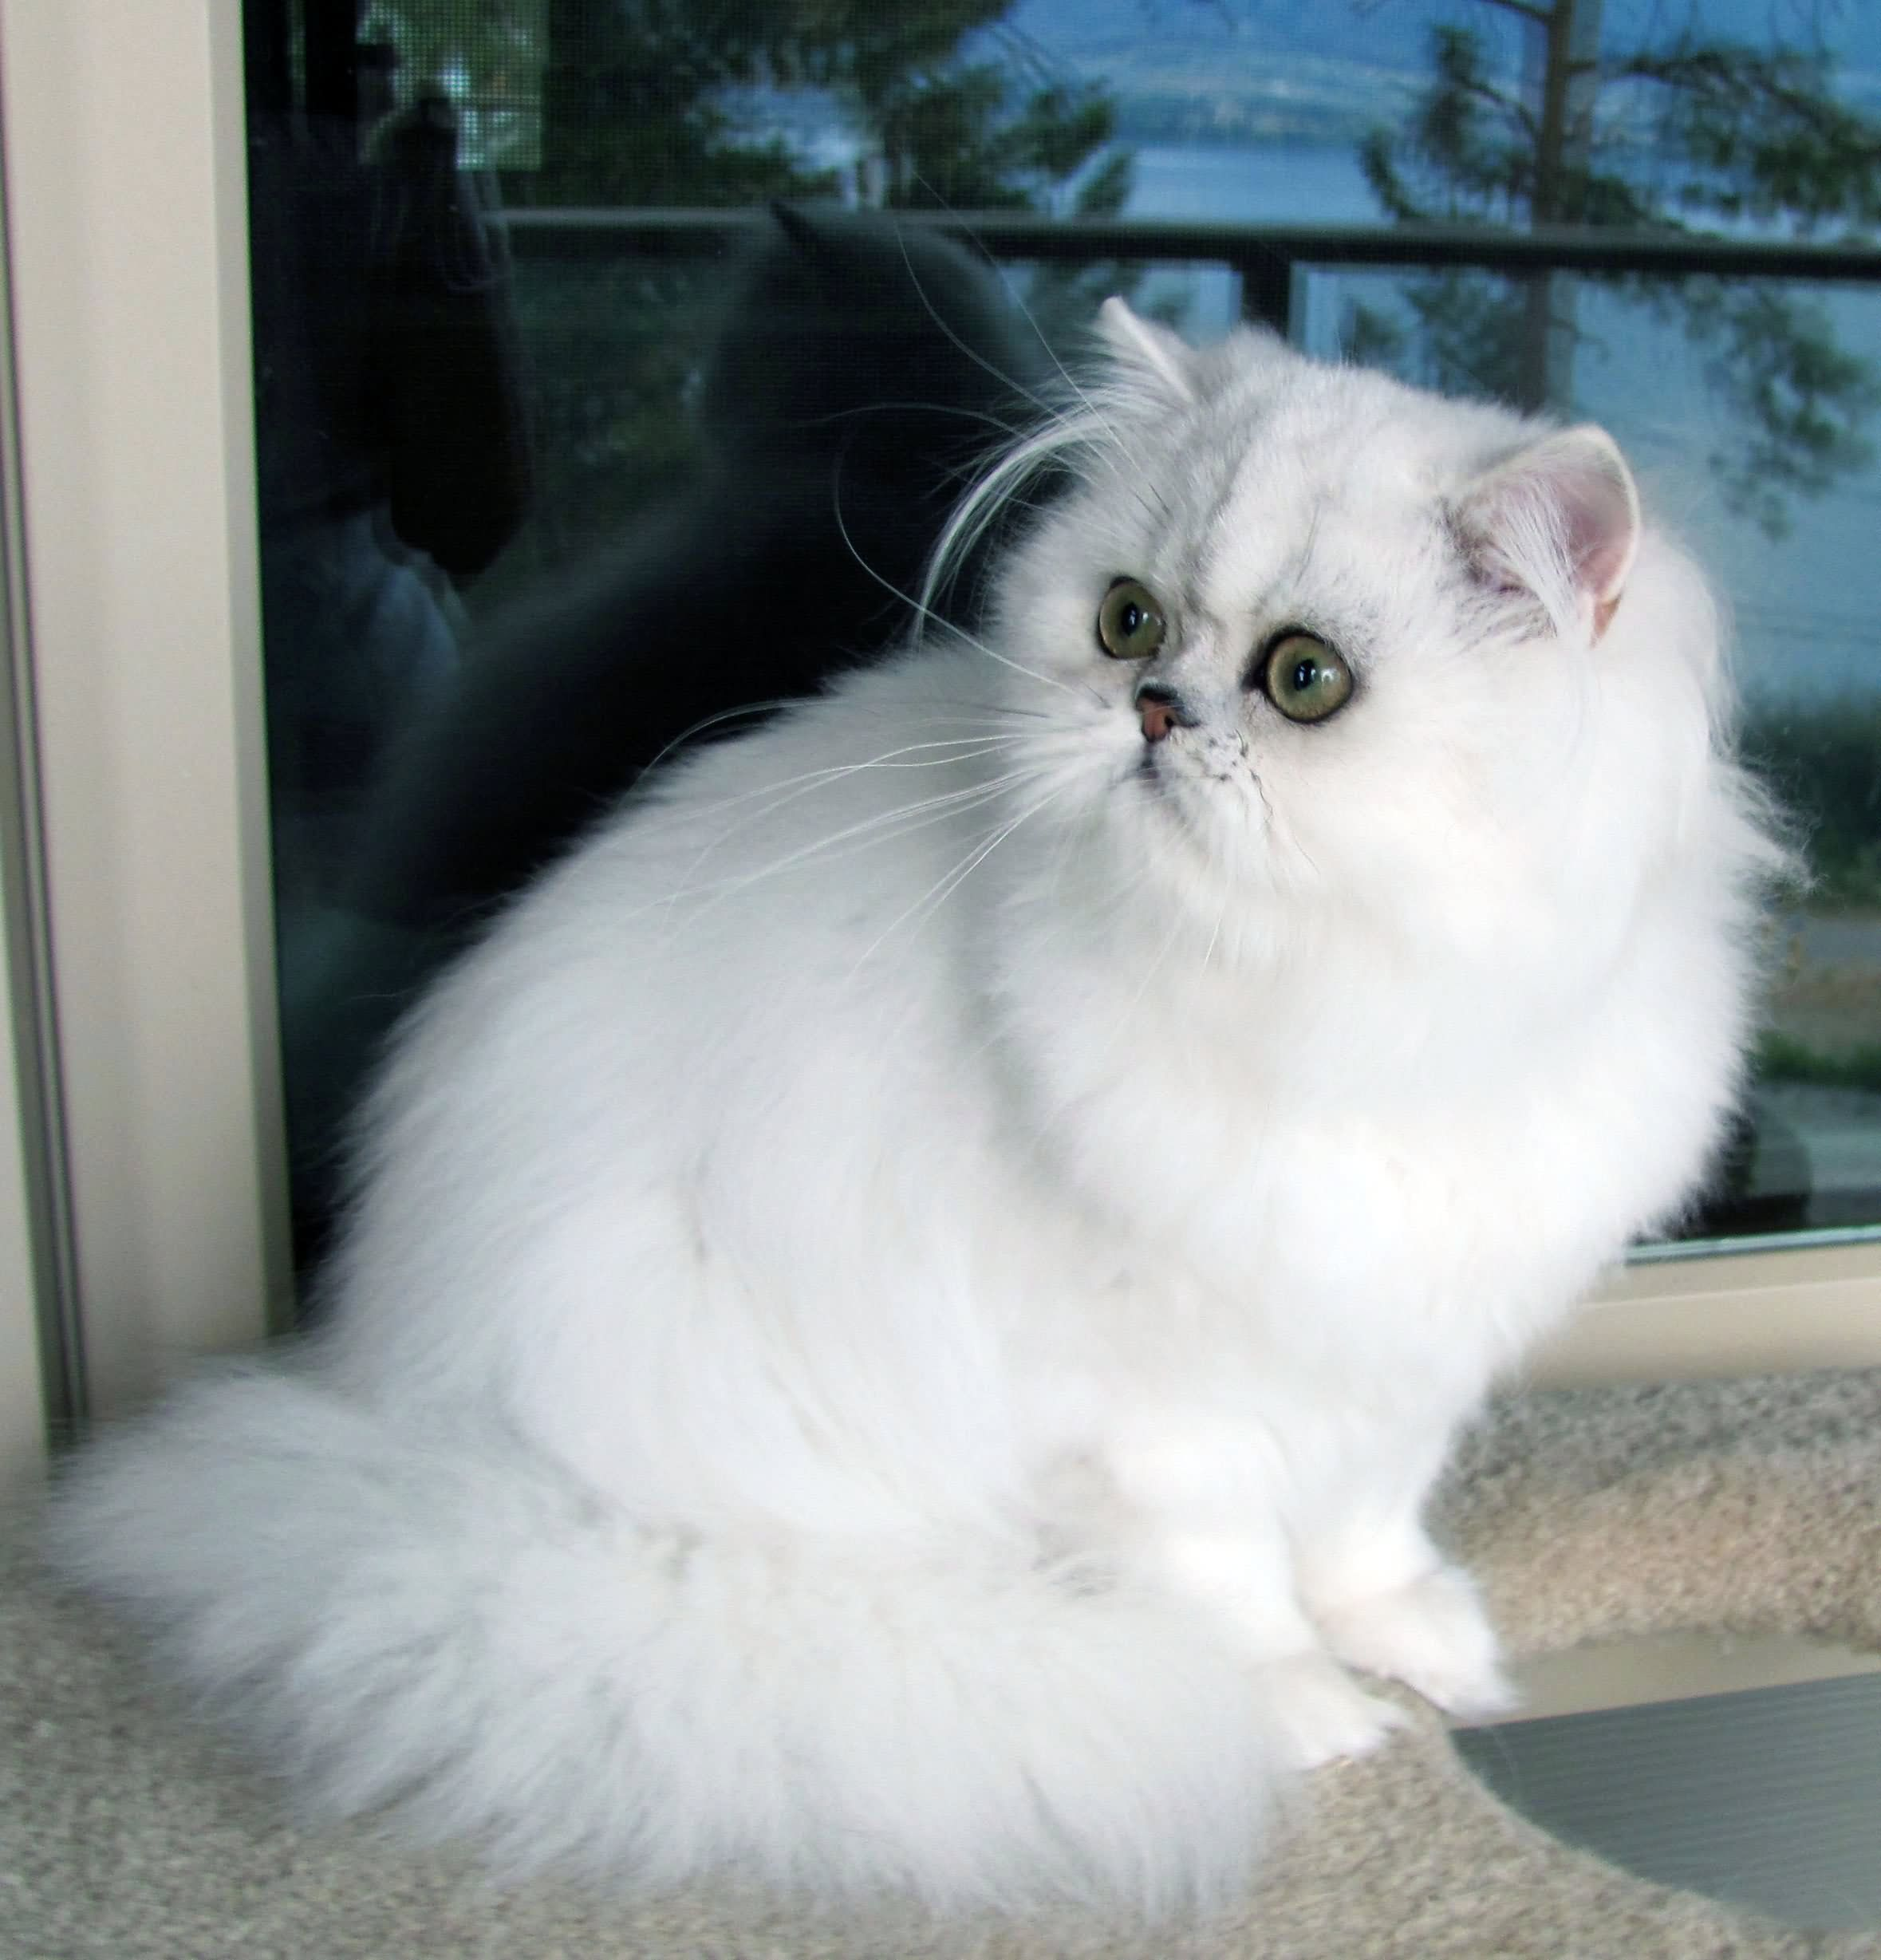 White Himalayan Cat Sitting. Himalayan Cat is a breed or